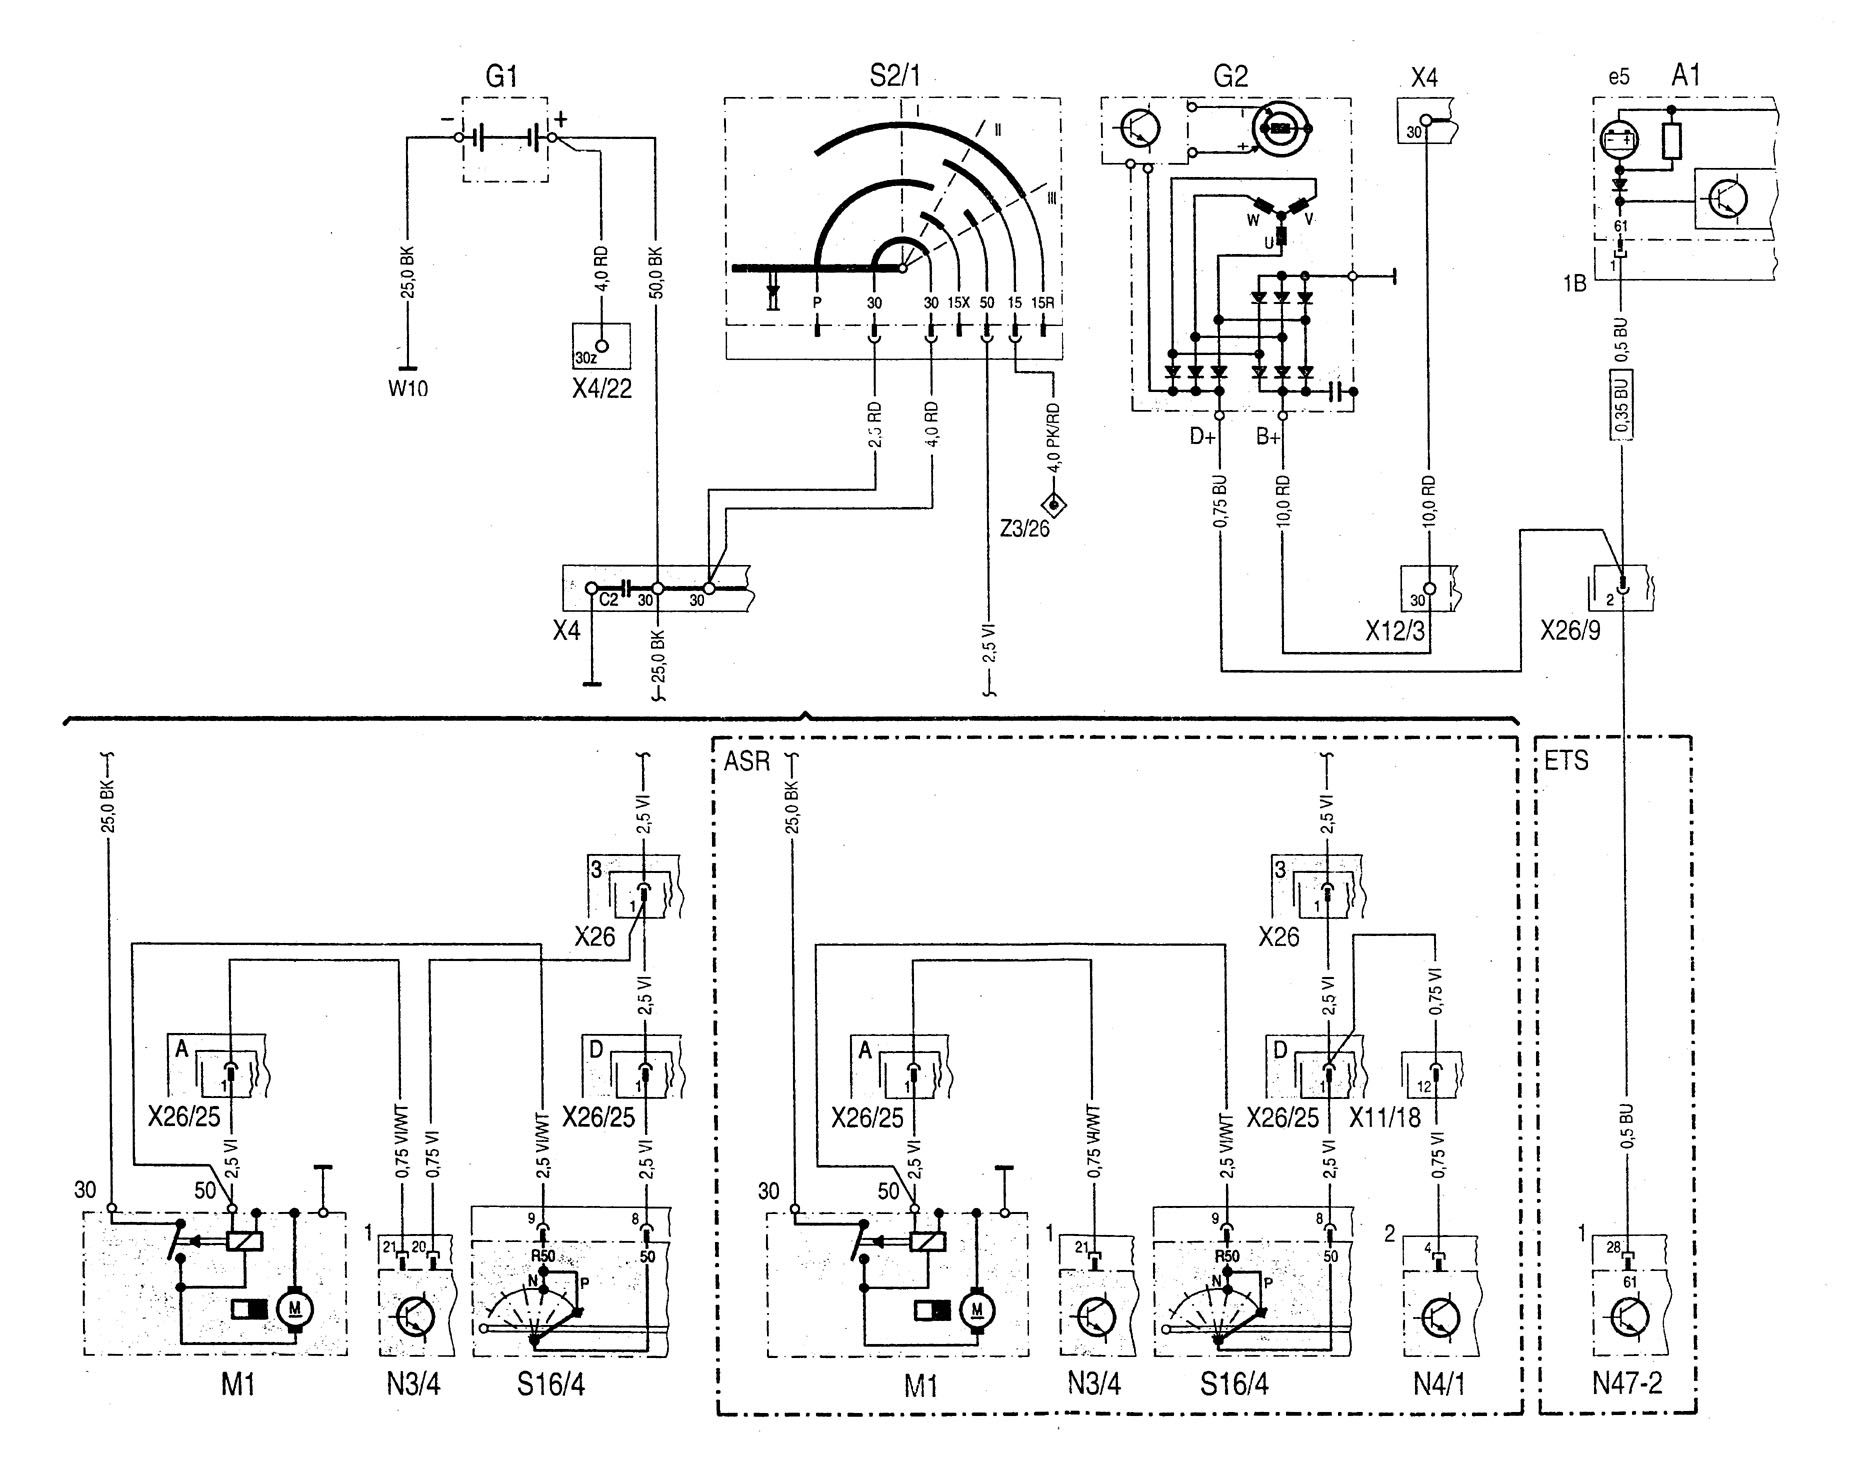 10base t wiring diagram a of non luminous flame mercedes 220 auto electrical